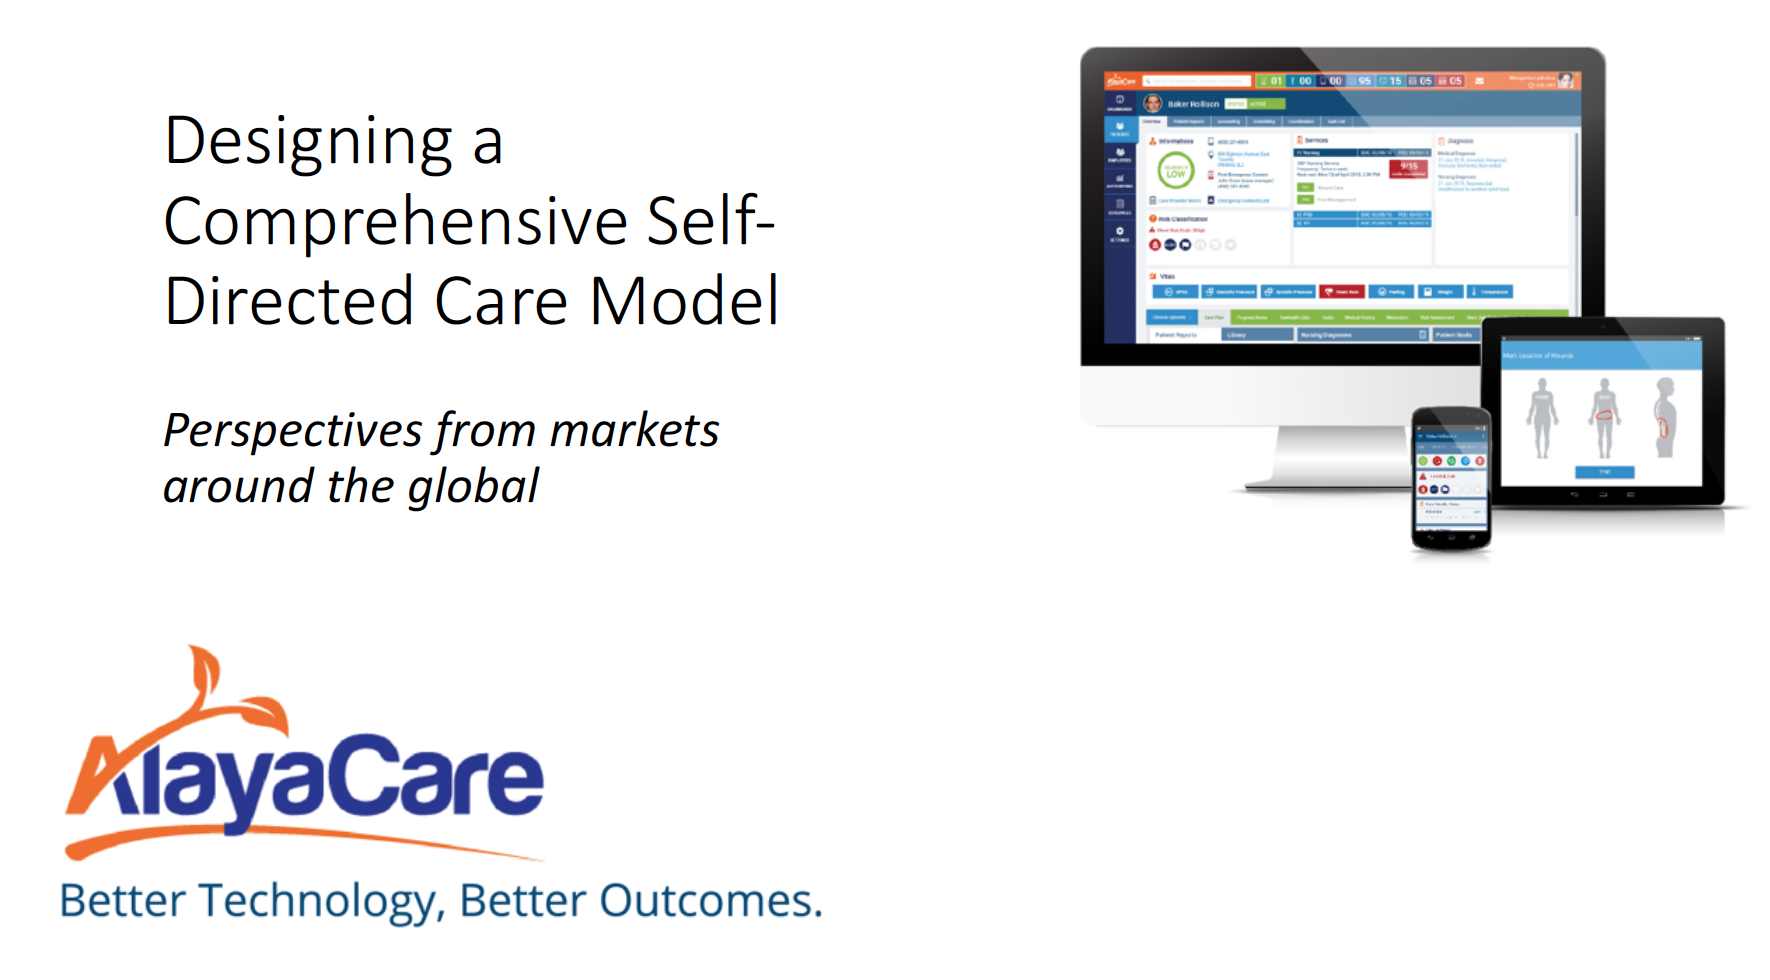 Designing a Comprehensive Self-Directed Care Model